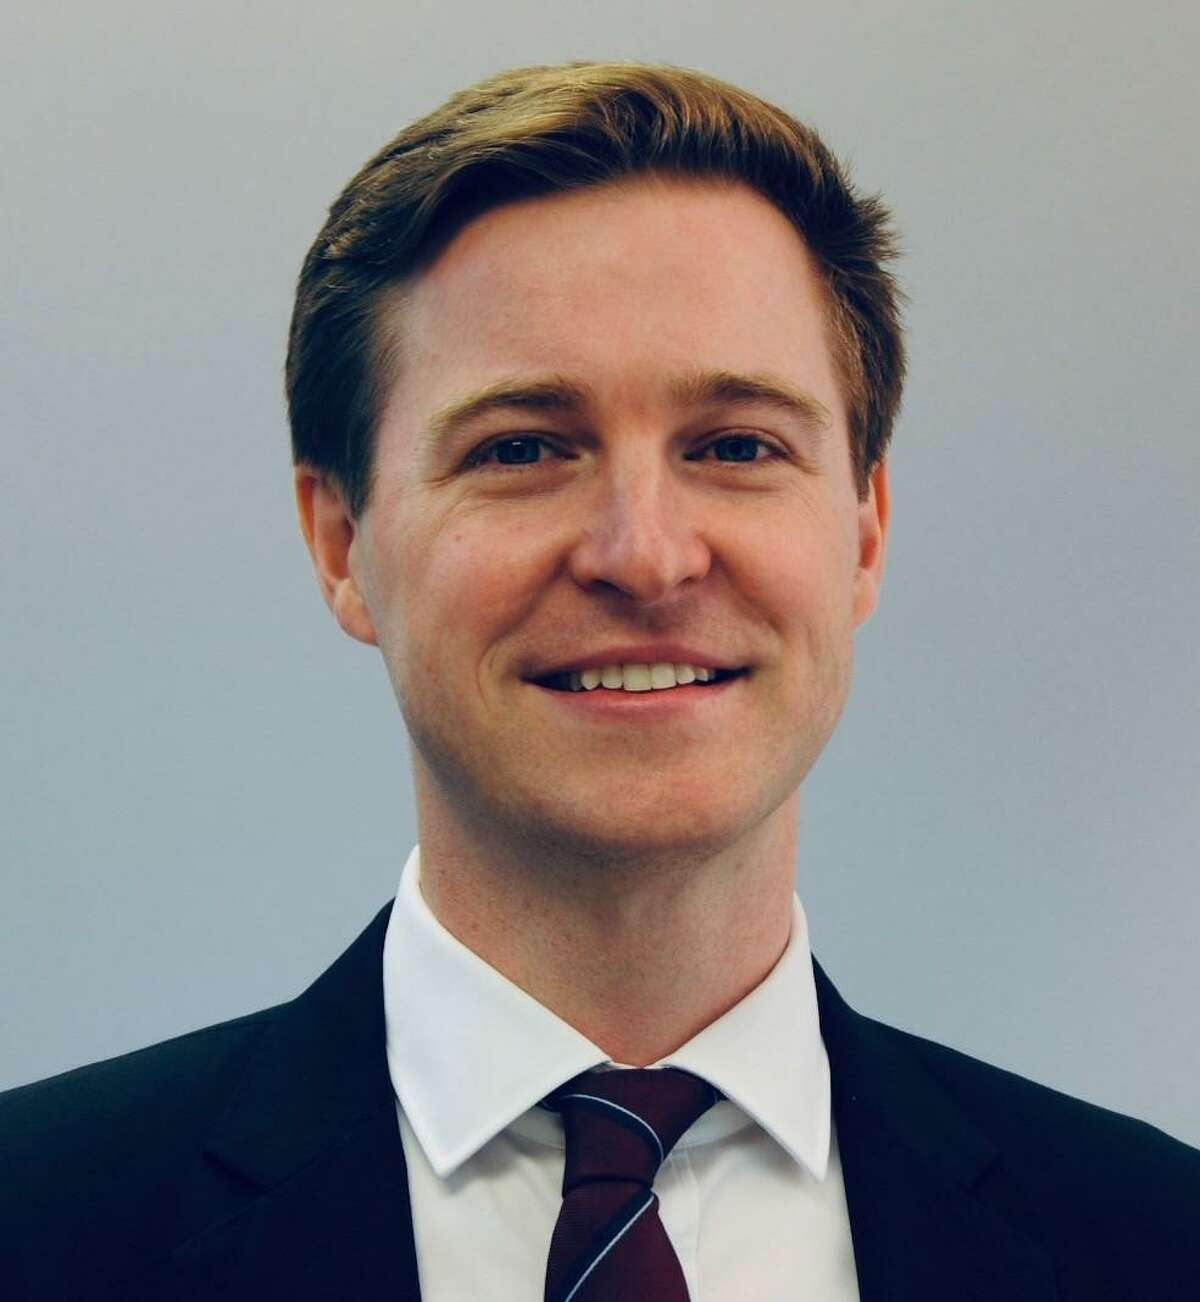 Andrew Okrongly was appointed to the Ridgefield board of finance on July 22, 2021.